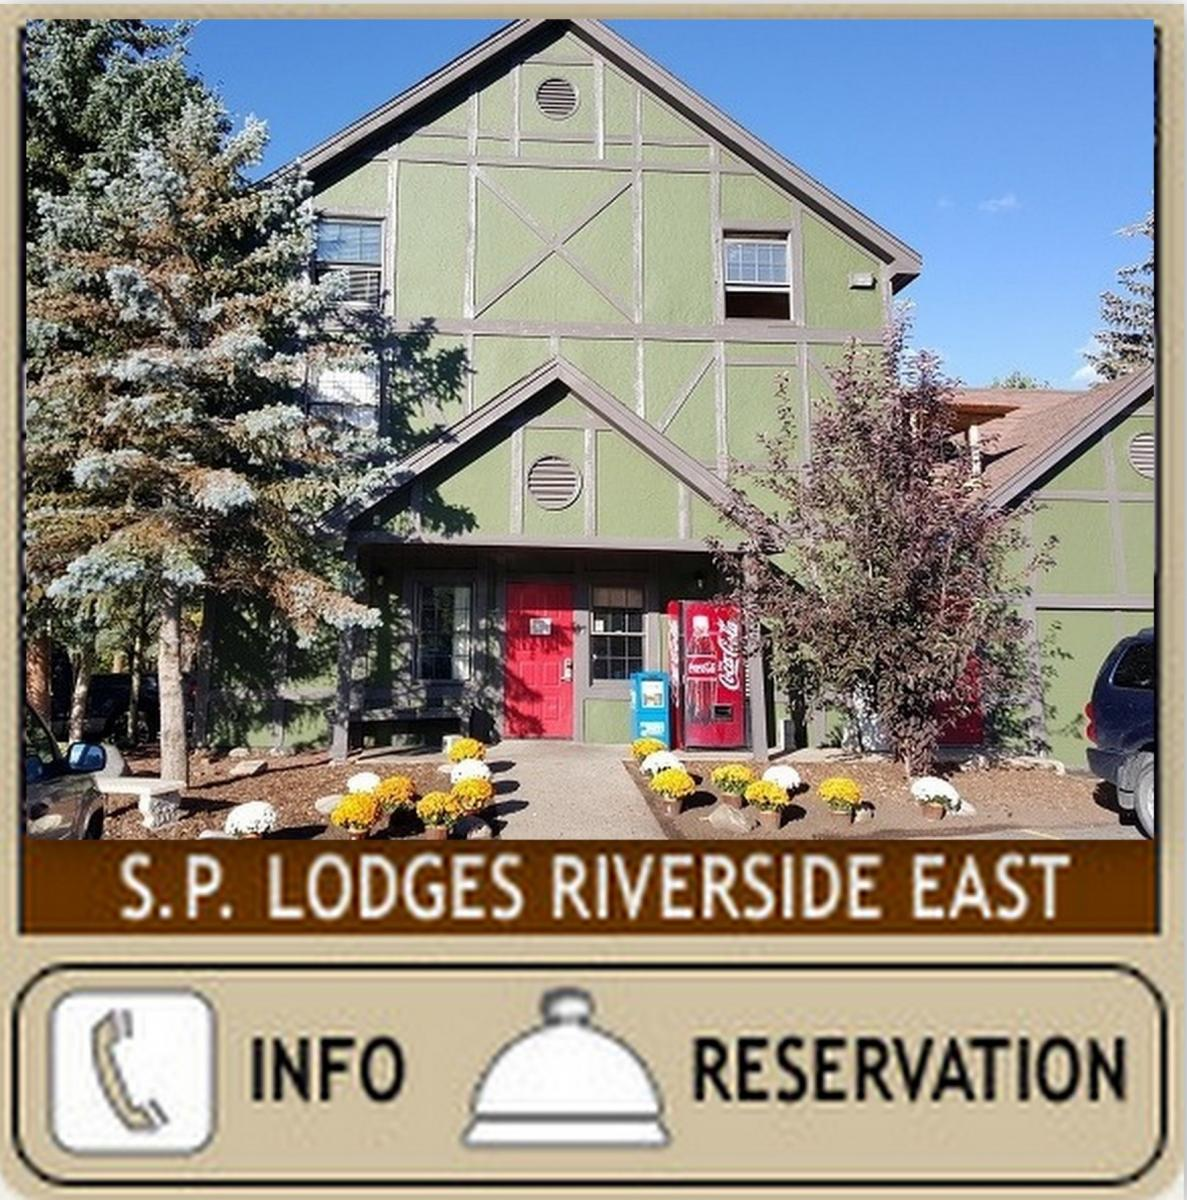 Summit Peaks Lodge Riverside East